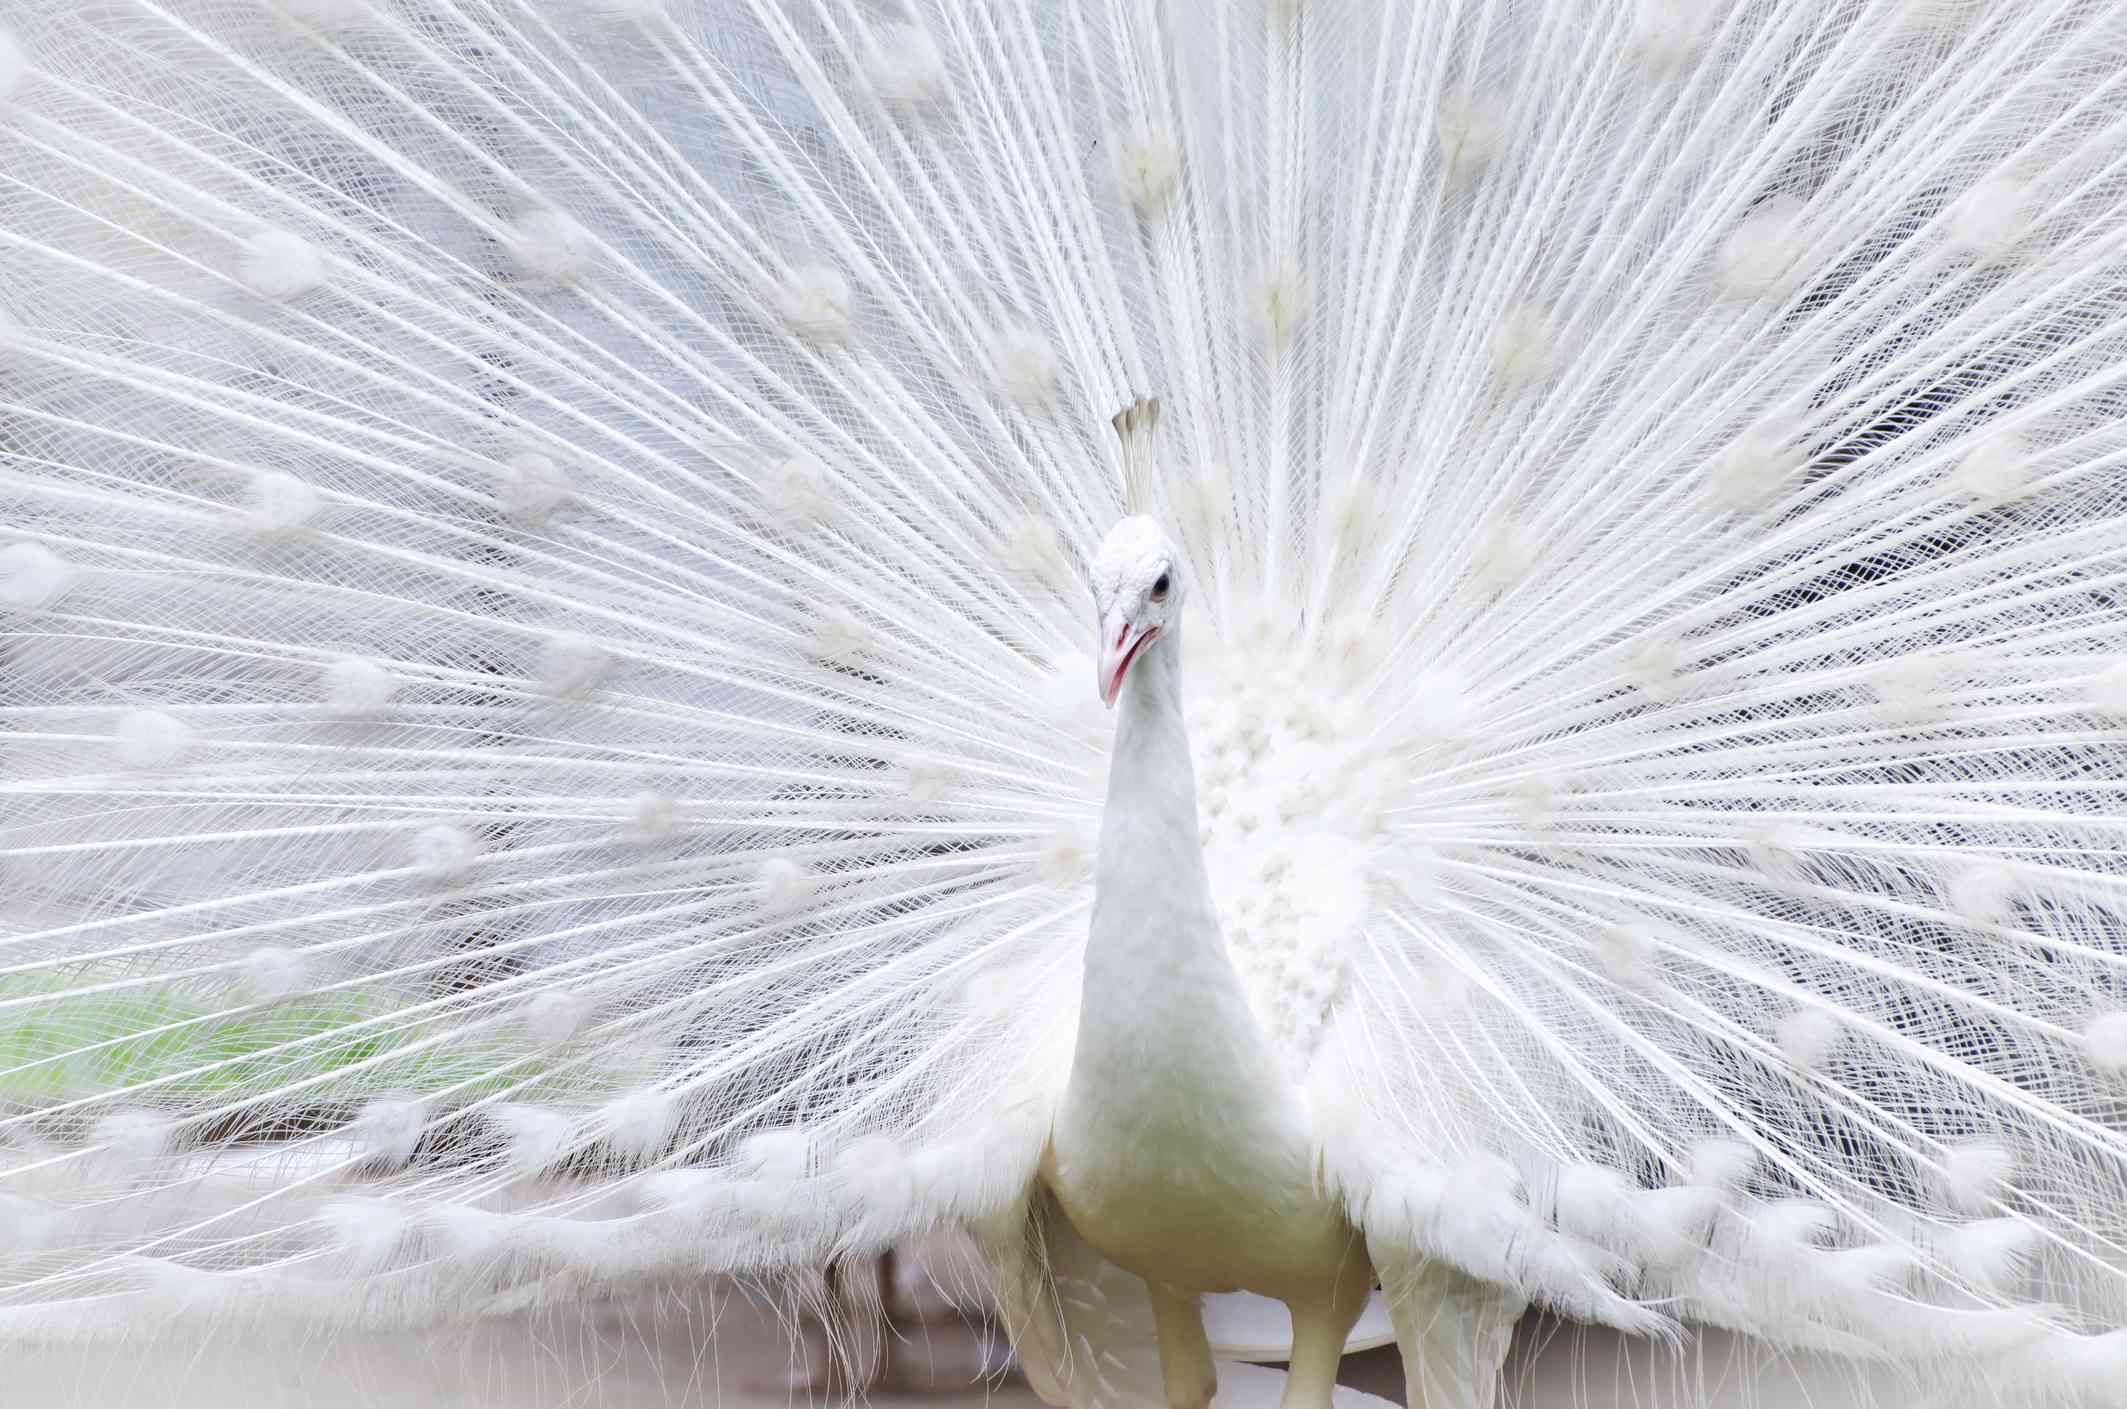 A close shot of a white albino peacock spreading its feathers.